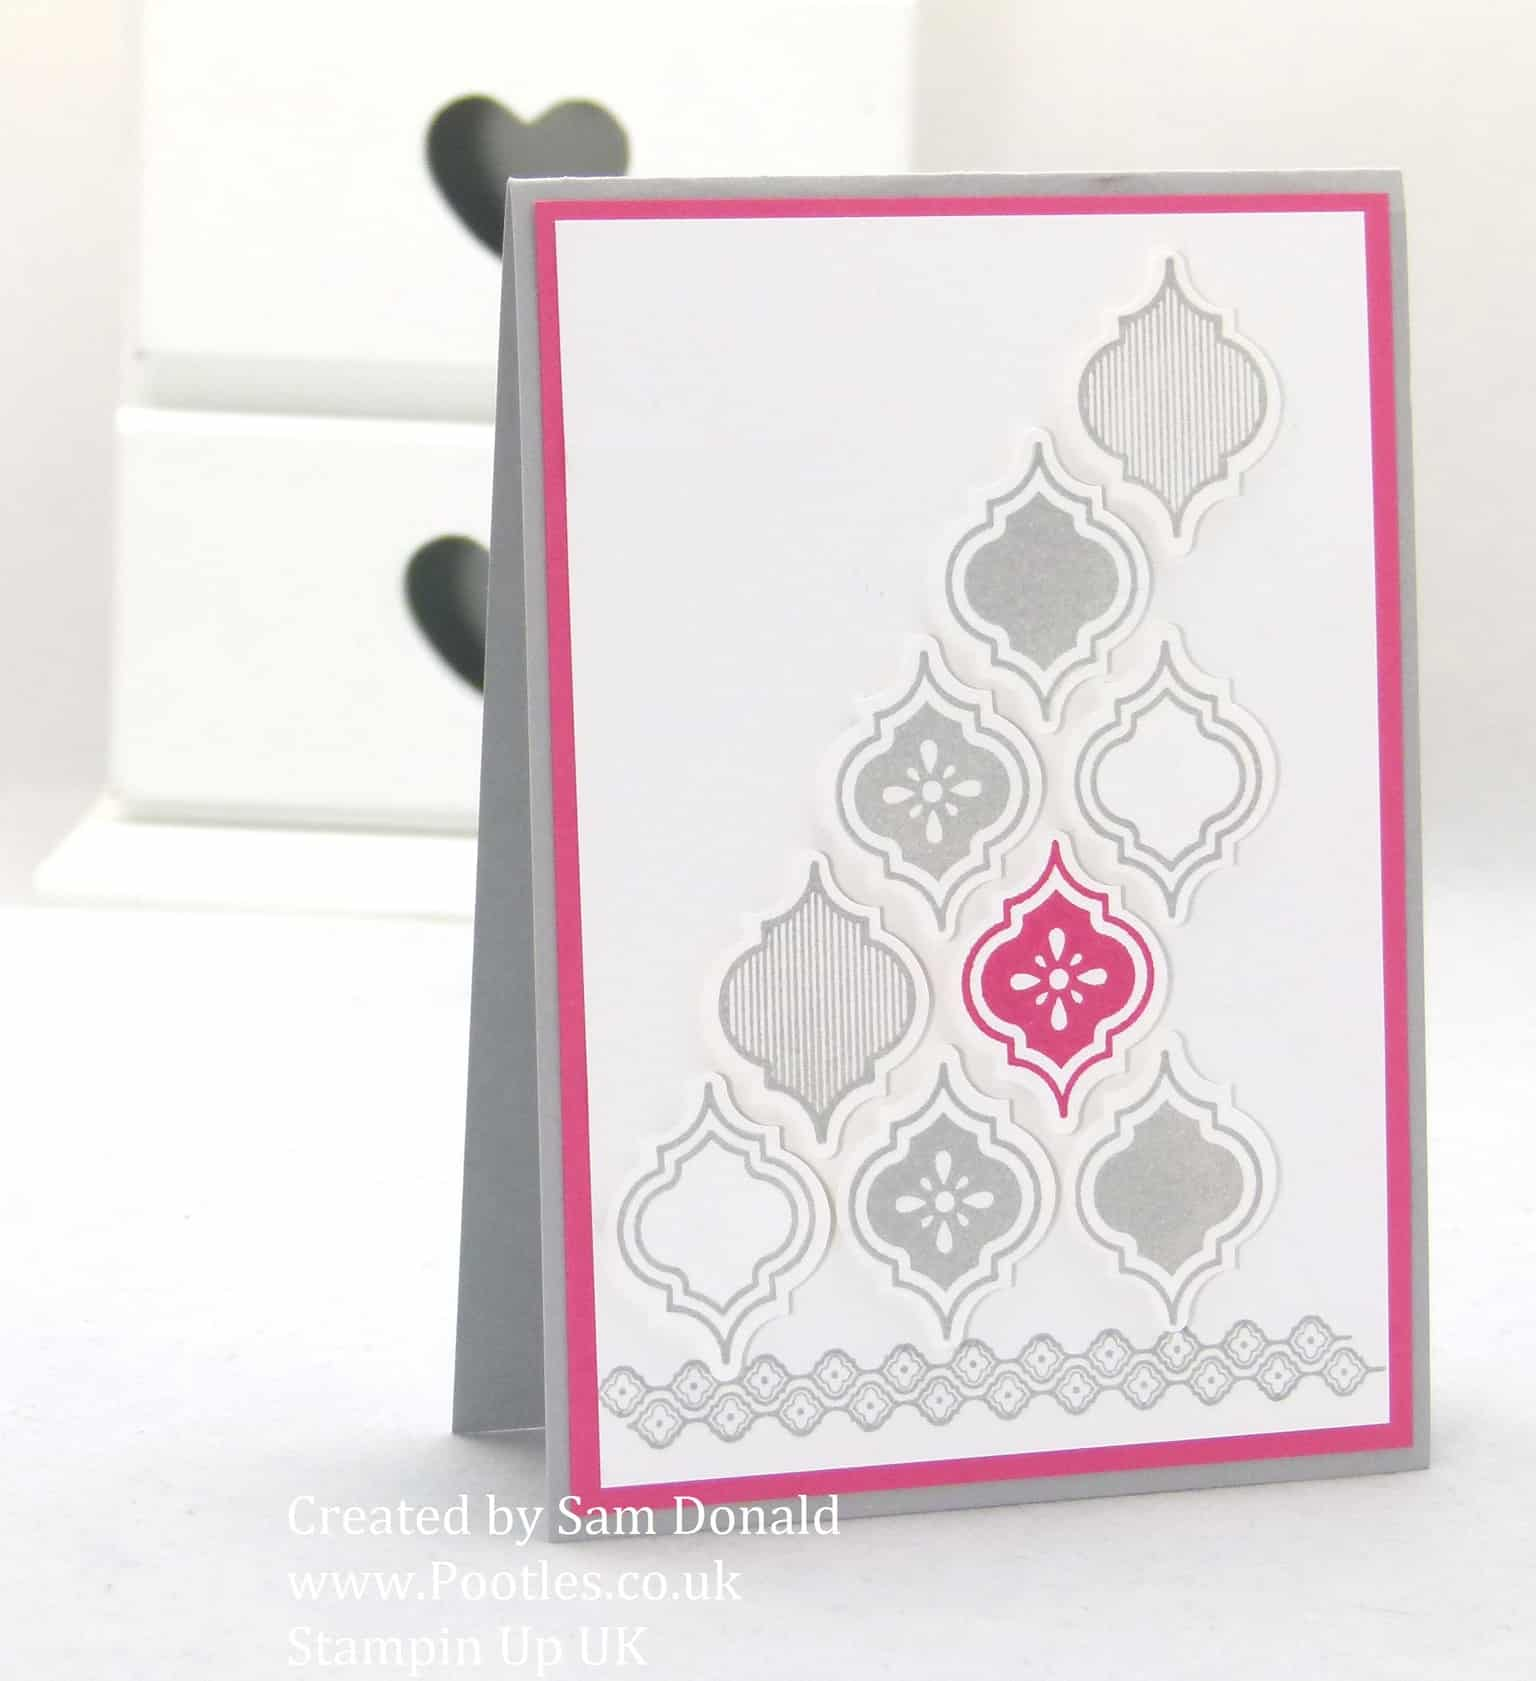 stampin up uk mosaic madness cards video